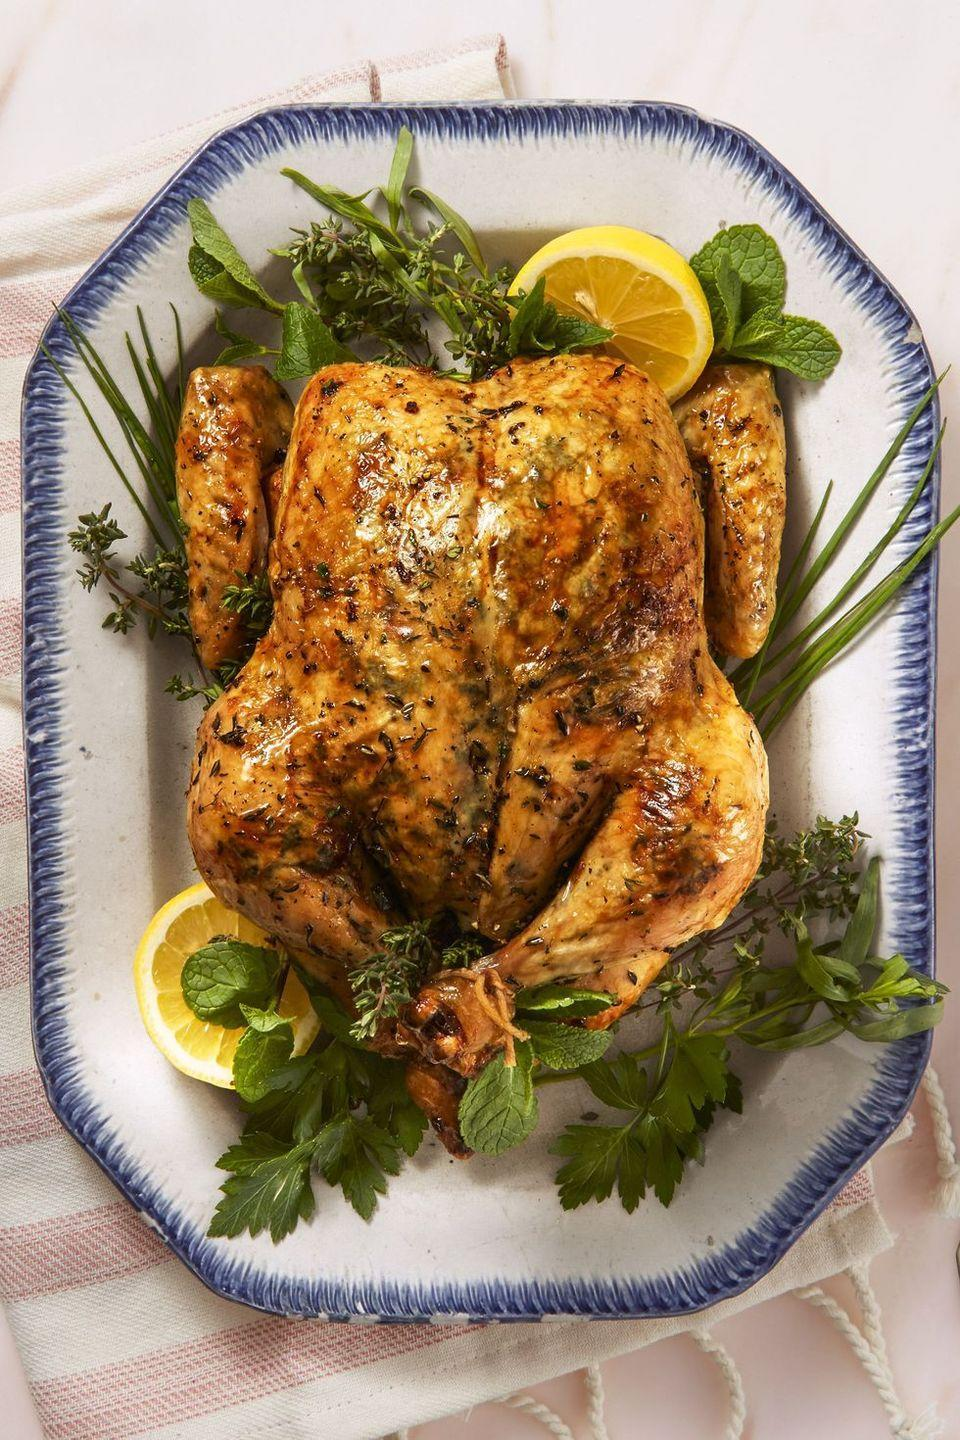 """<p>You'll get plenty of leftovers out of this citrusy, lemon flavored roasted chicken.</p><p><em><a href=""""https://www.goodhousekeeping.com/food-recipes/healthy/a43668/lemony-herb-roast-chicken-recipe/"""" rel=""""nofollow noopener"""" target=""""_blank"""" data-ylk=""""slk:Get the recipe for Lemony Herb Roast Chicken »"""" class=""""link rapid-noclick-resp"""">Get the recipe for Lemony Herb Roast Chicken »</a></em></p>"""